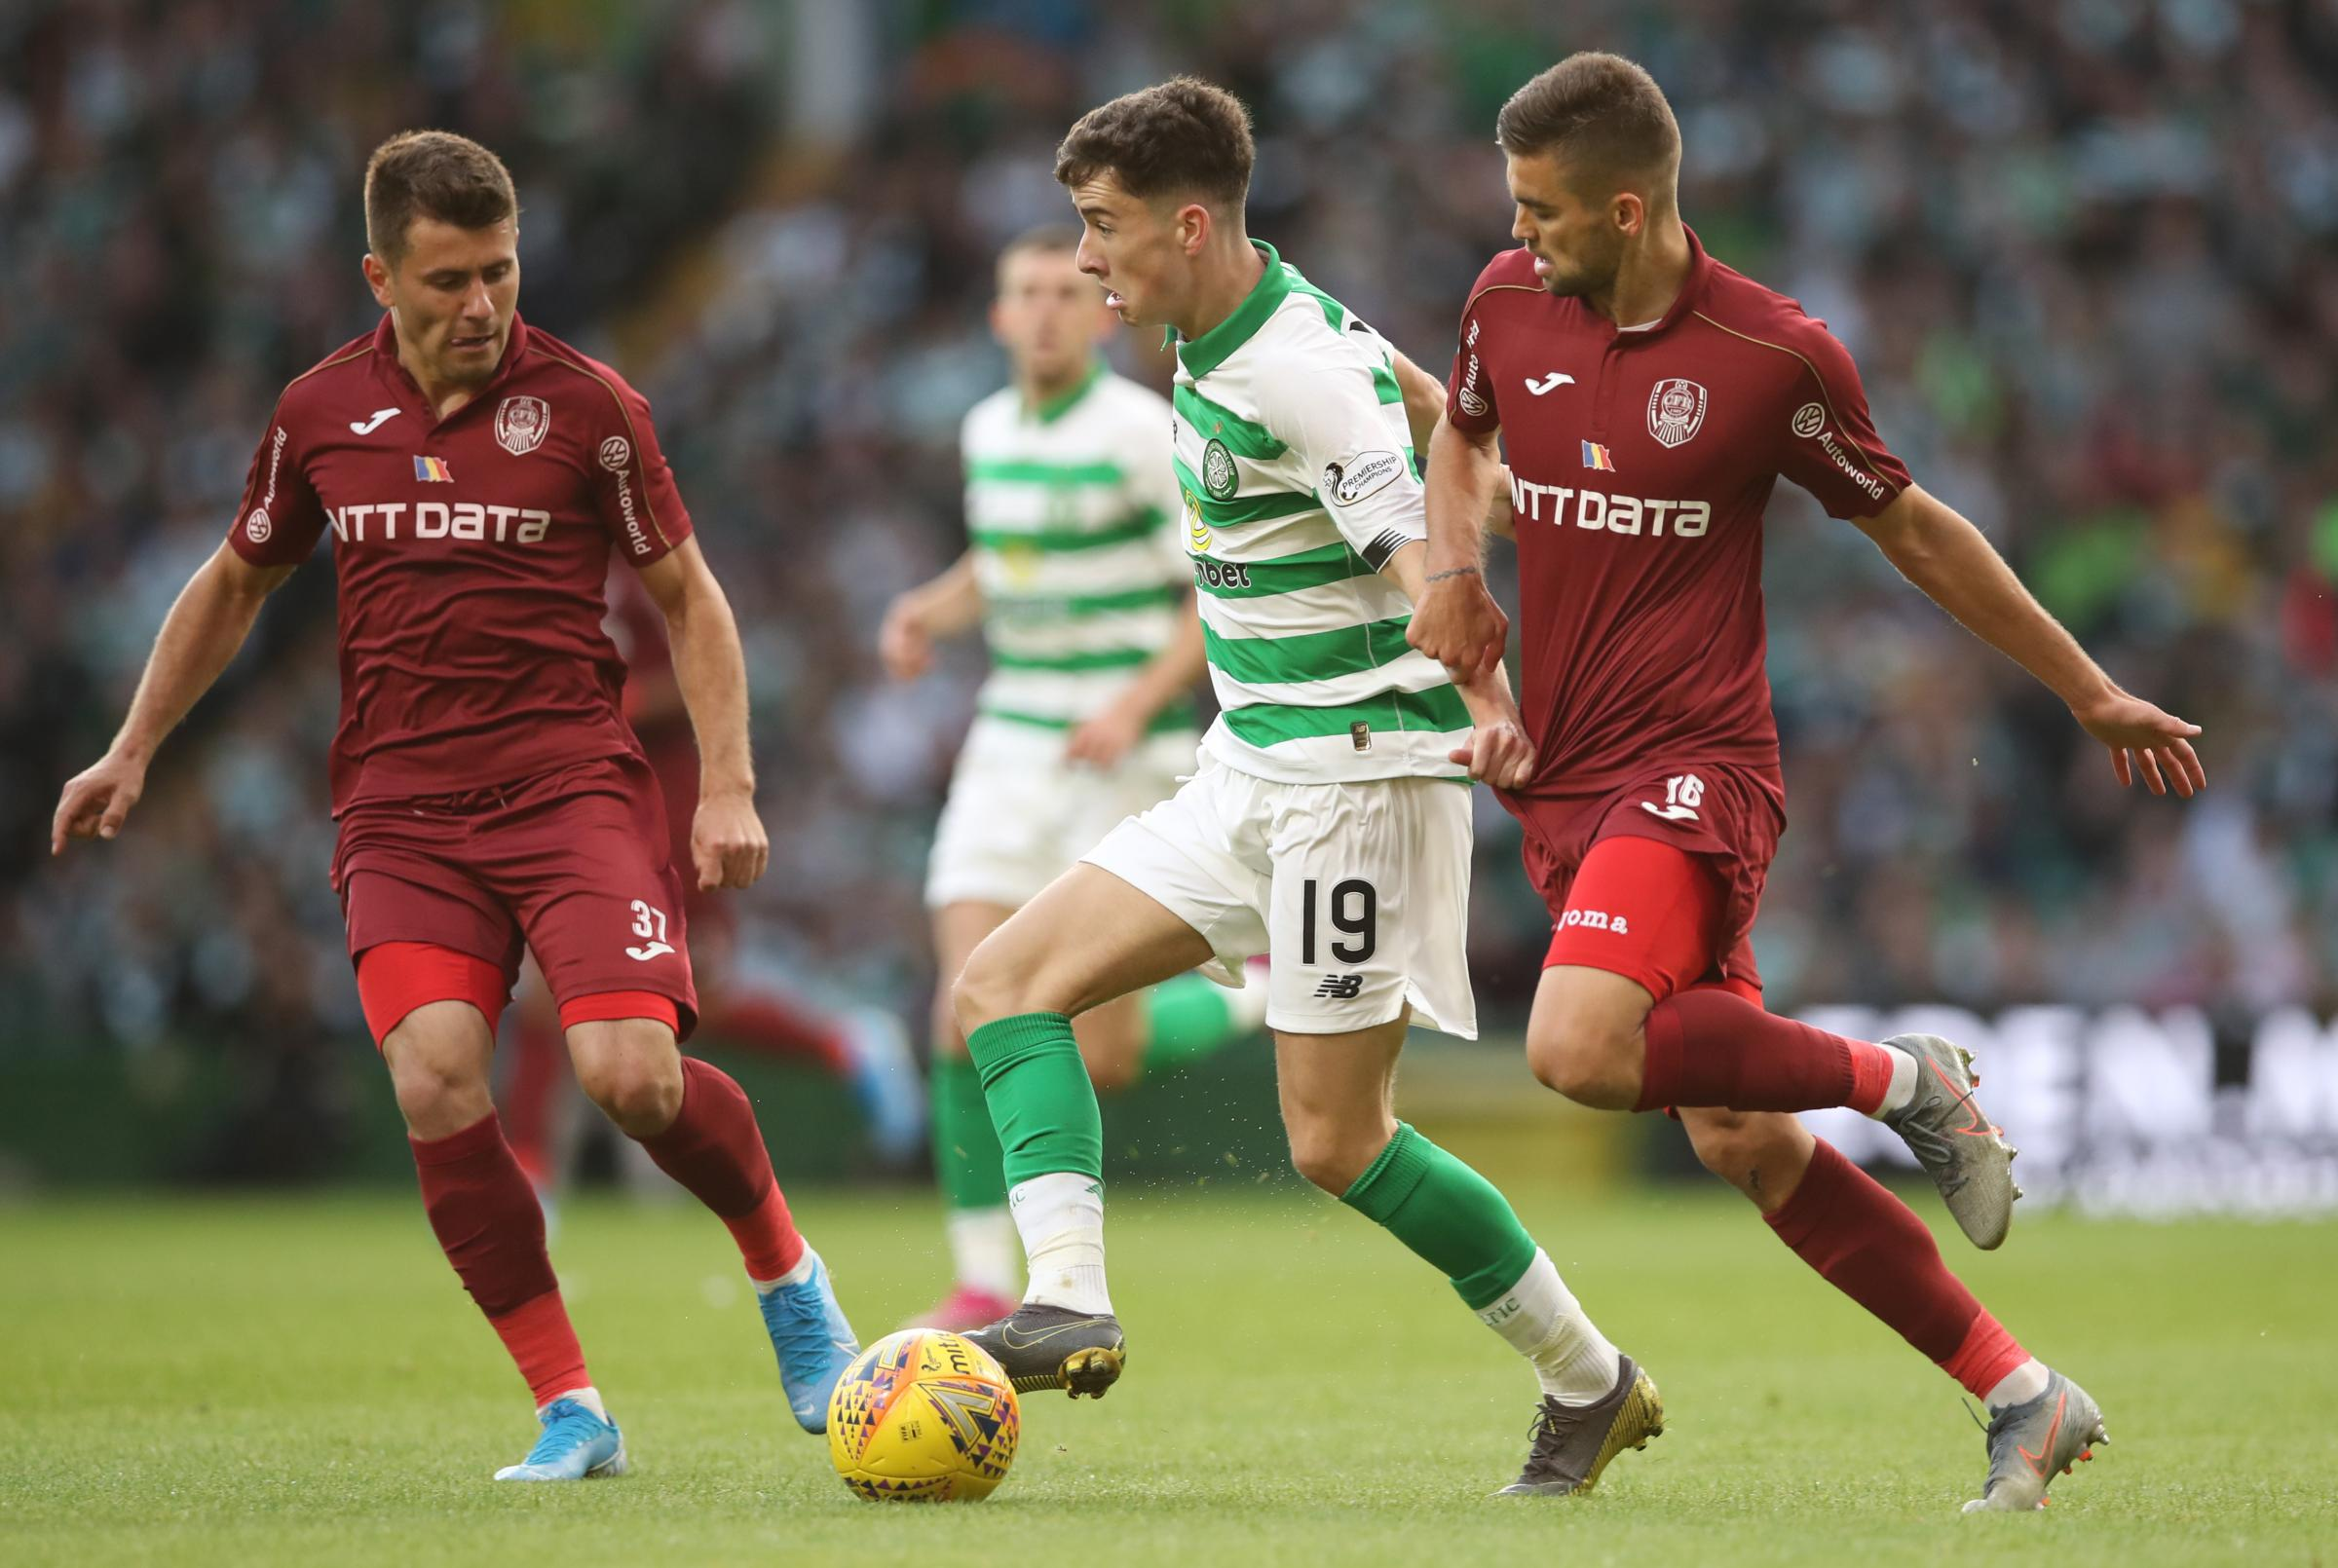 Celtic winger Mikey Johnston ruled out of Hamilton fixture